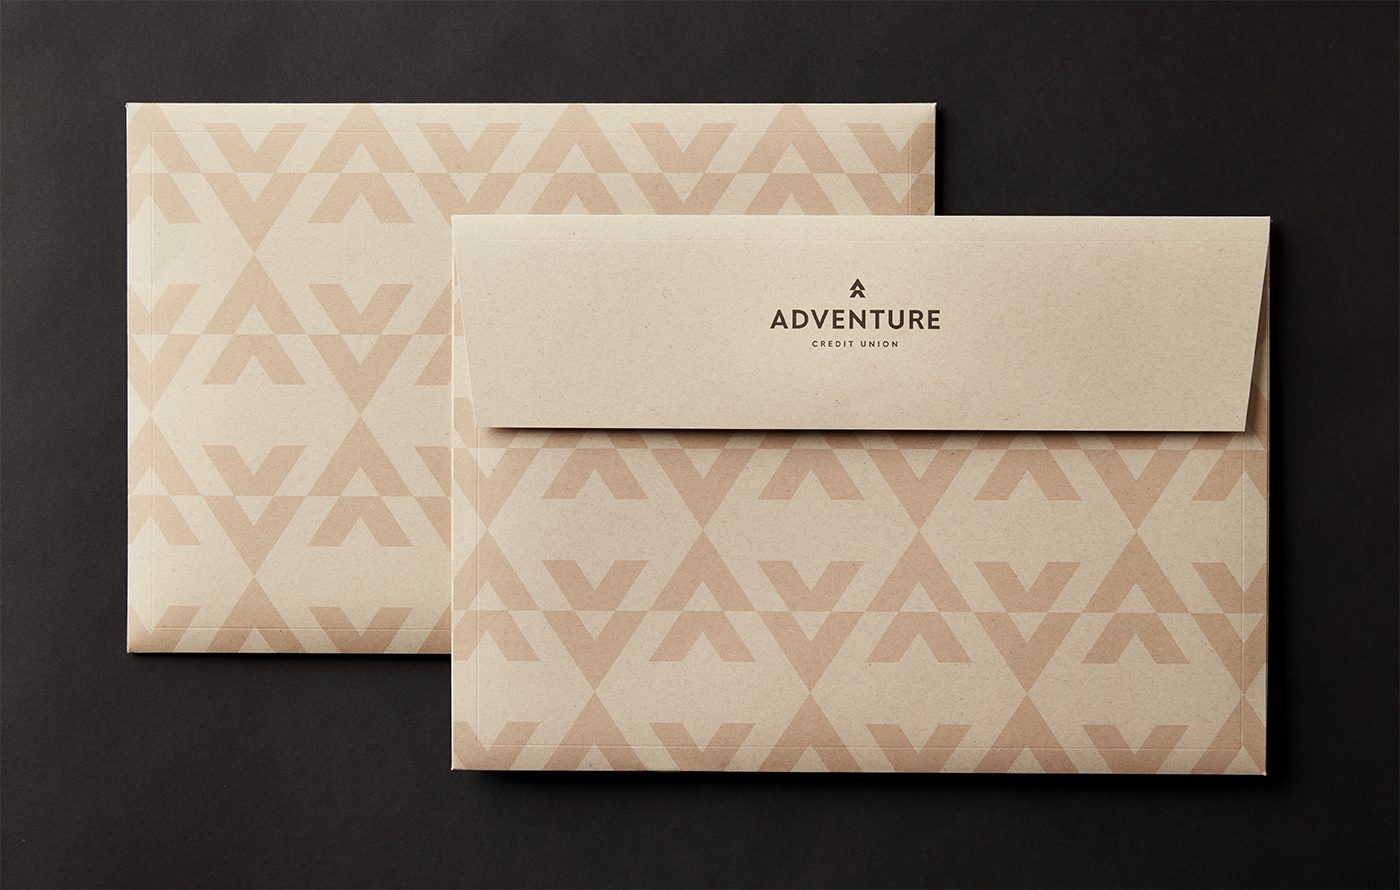 Adventure Credit Union patterned envelopes